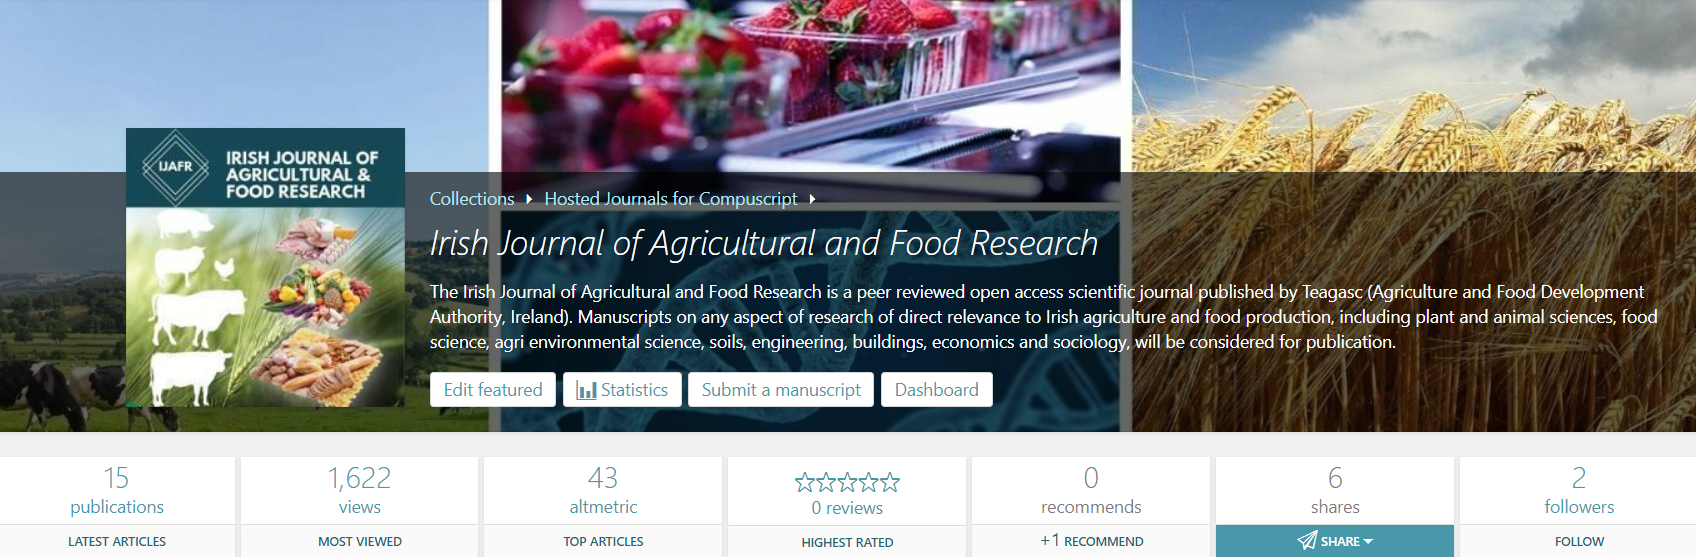 The Irish Journal of Agricultural and Food Research launches new interactive publishing environment